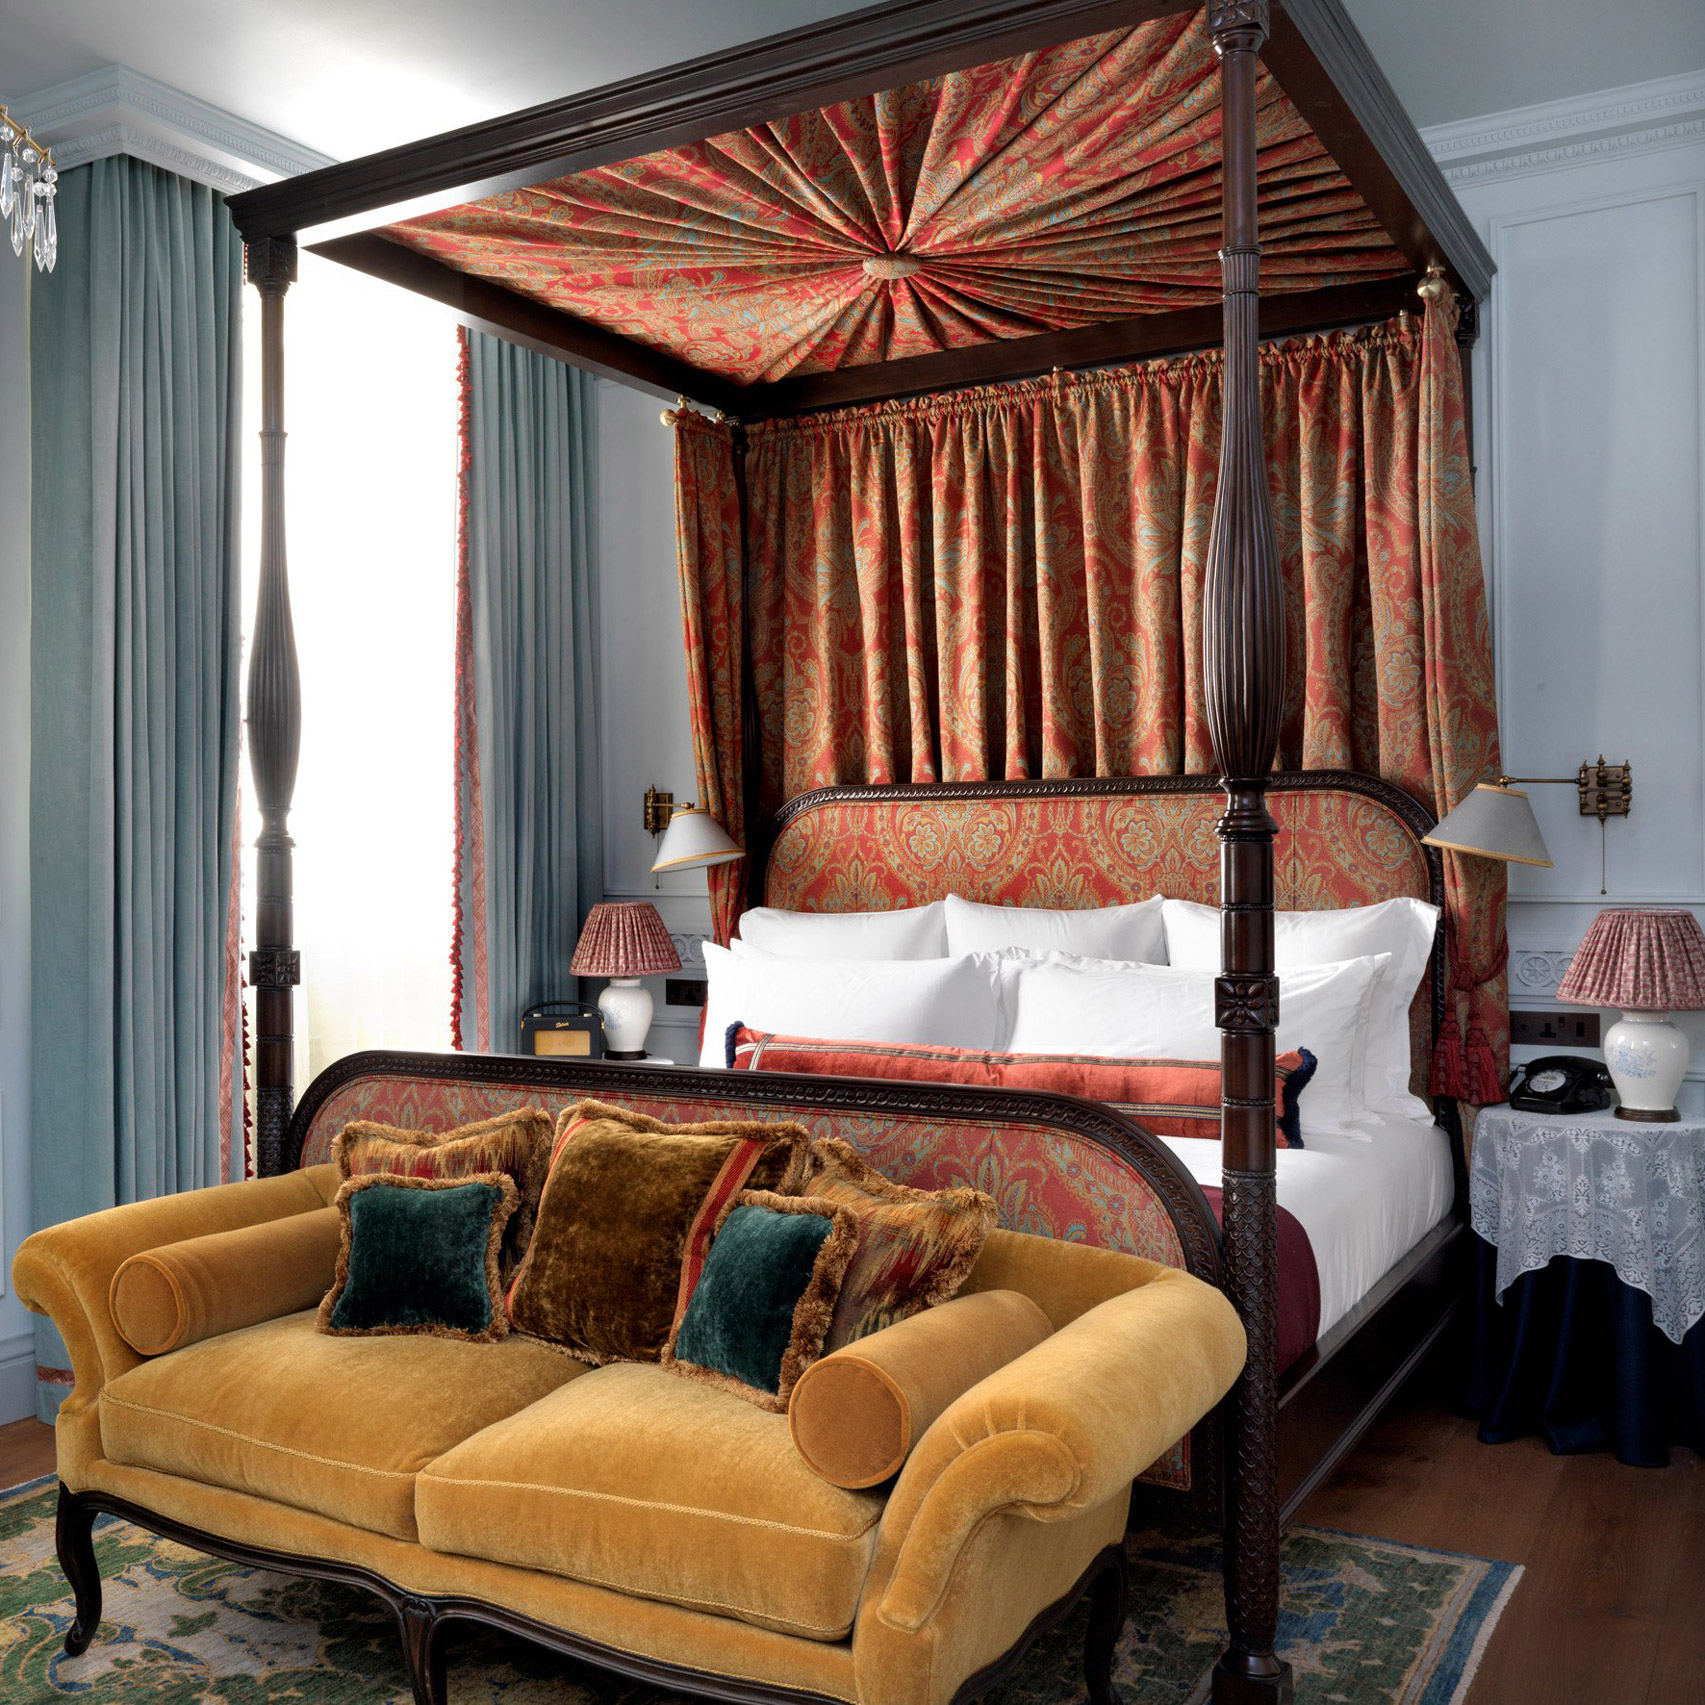 10 opulent interiors that spurn minimalism for rich colours and textures